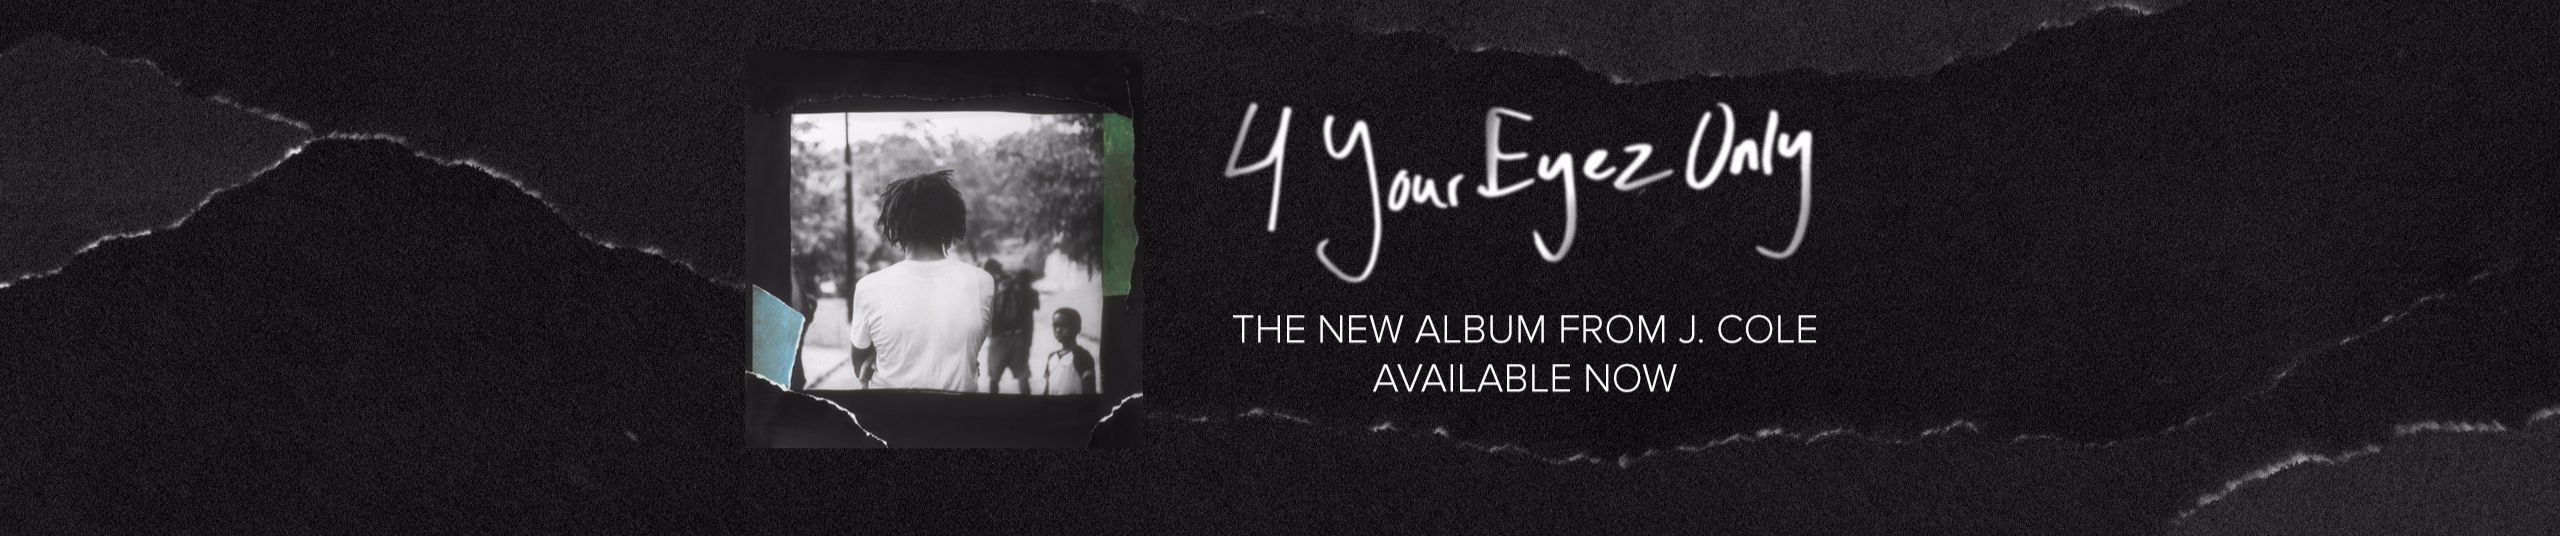 4 your eyez only torrent